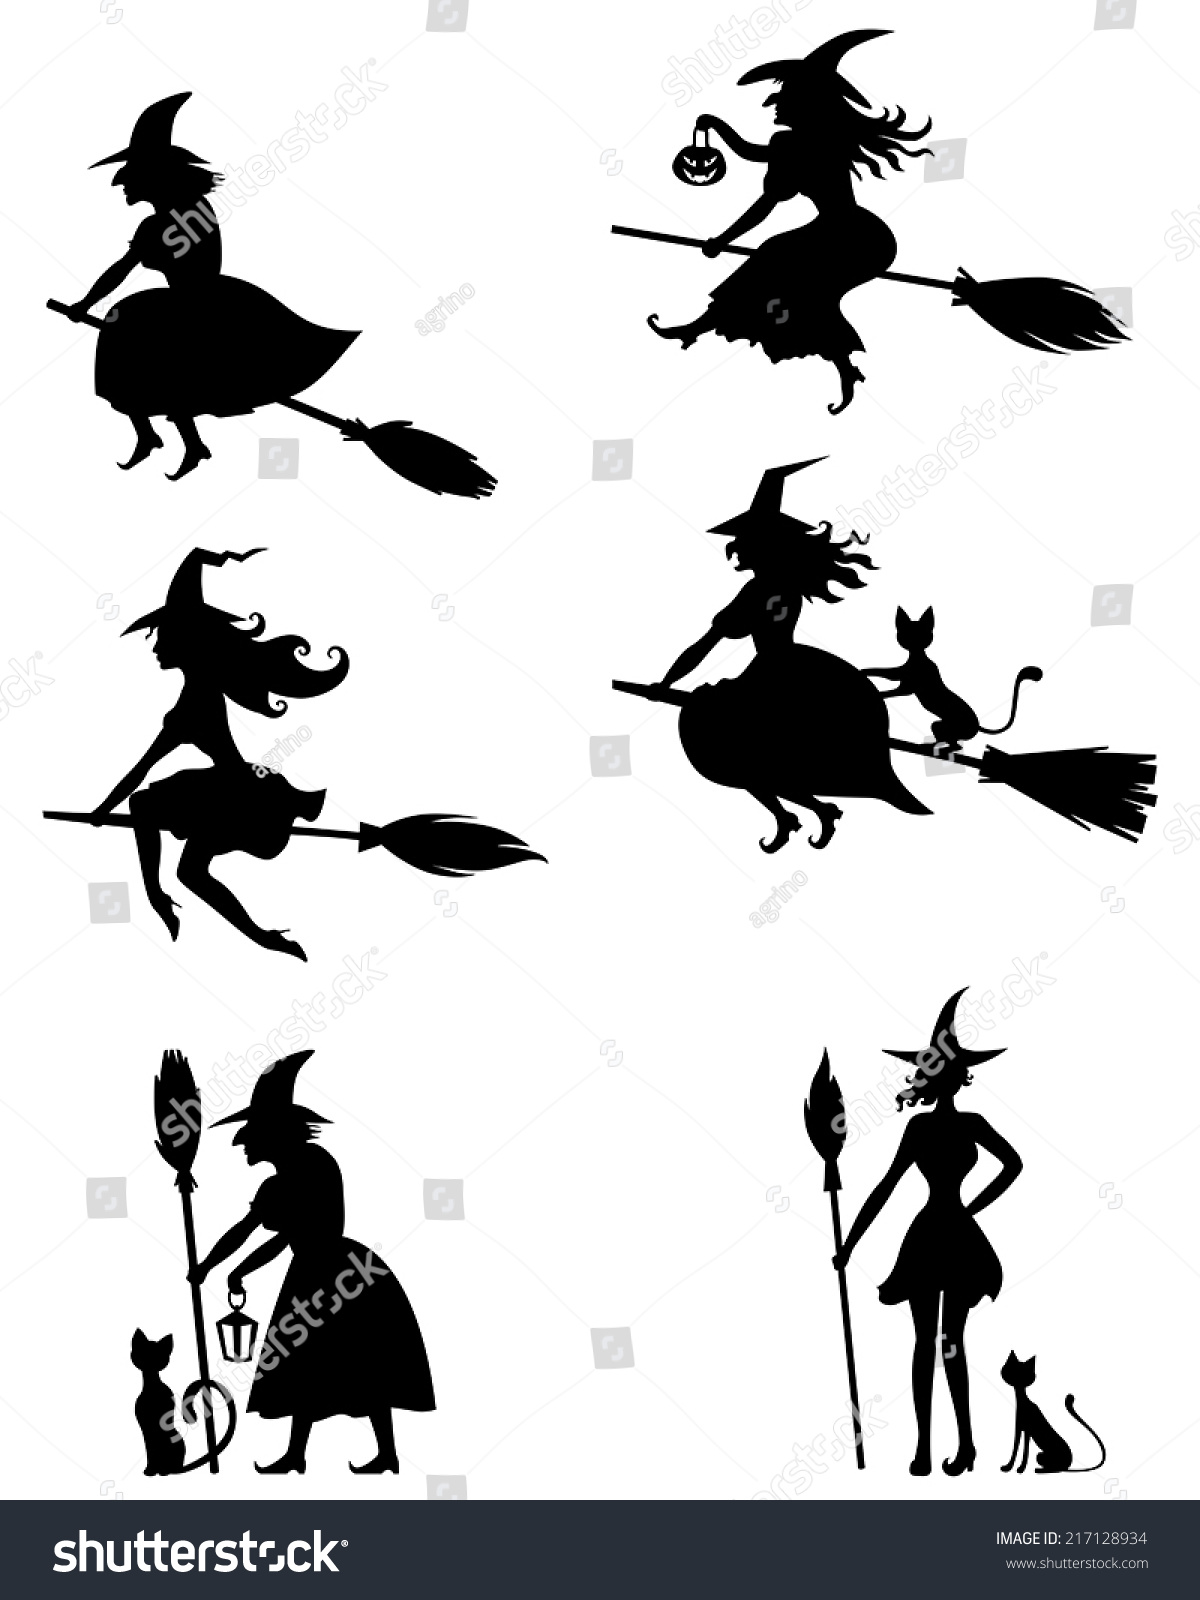 set silhouette blackandwhite image halloween witches stock vector